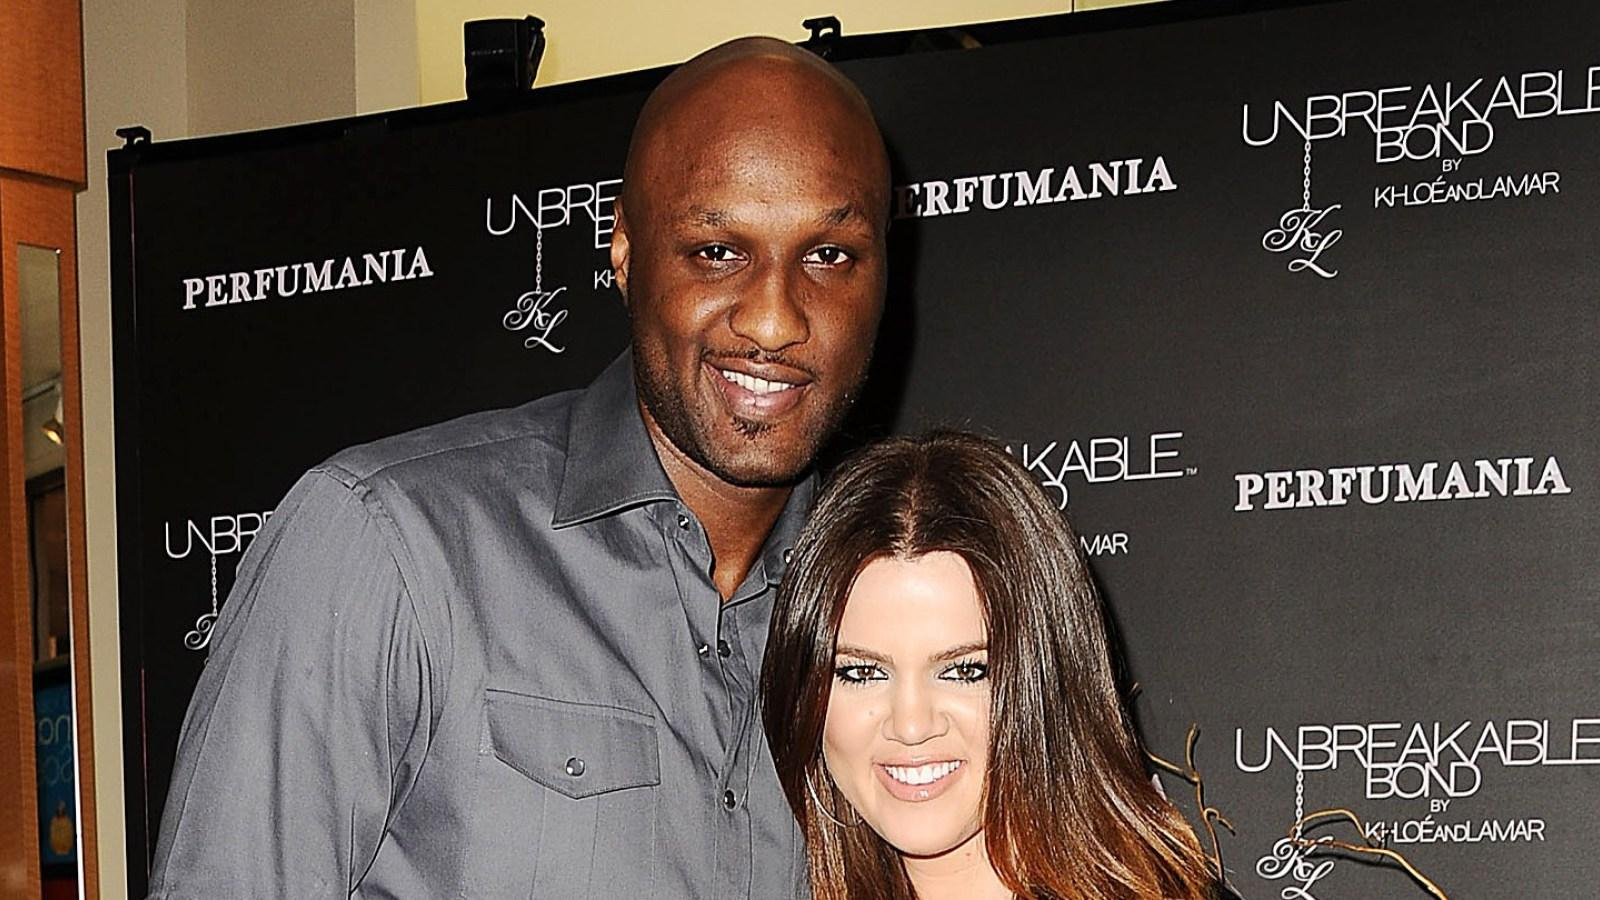 Lamar Odom Regrets Cheating On Khloe Kardashian And Wishes He Were 'More Of A Man' - Fans Believe They Are Soulmates